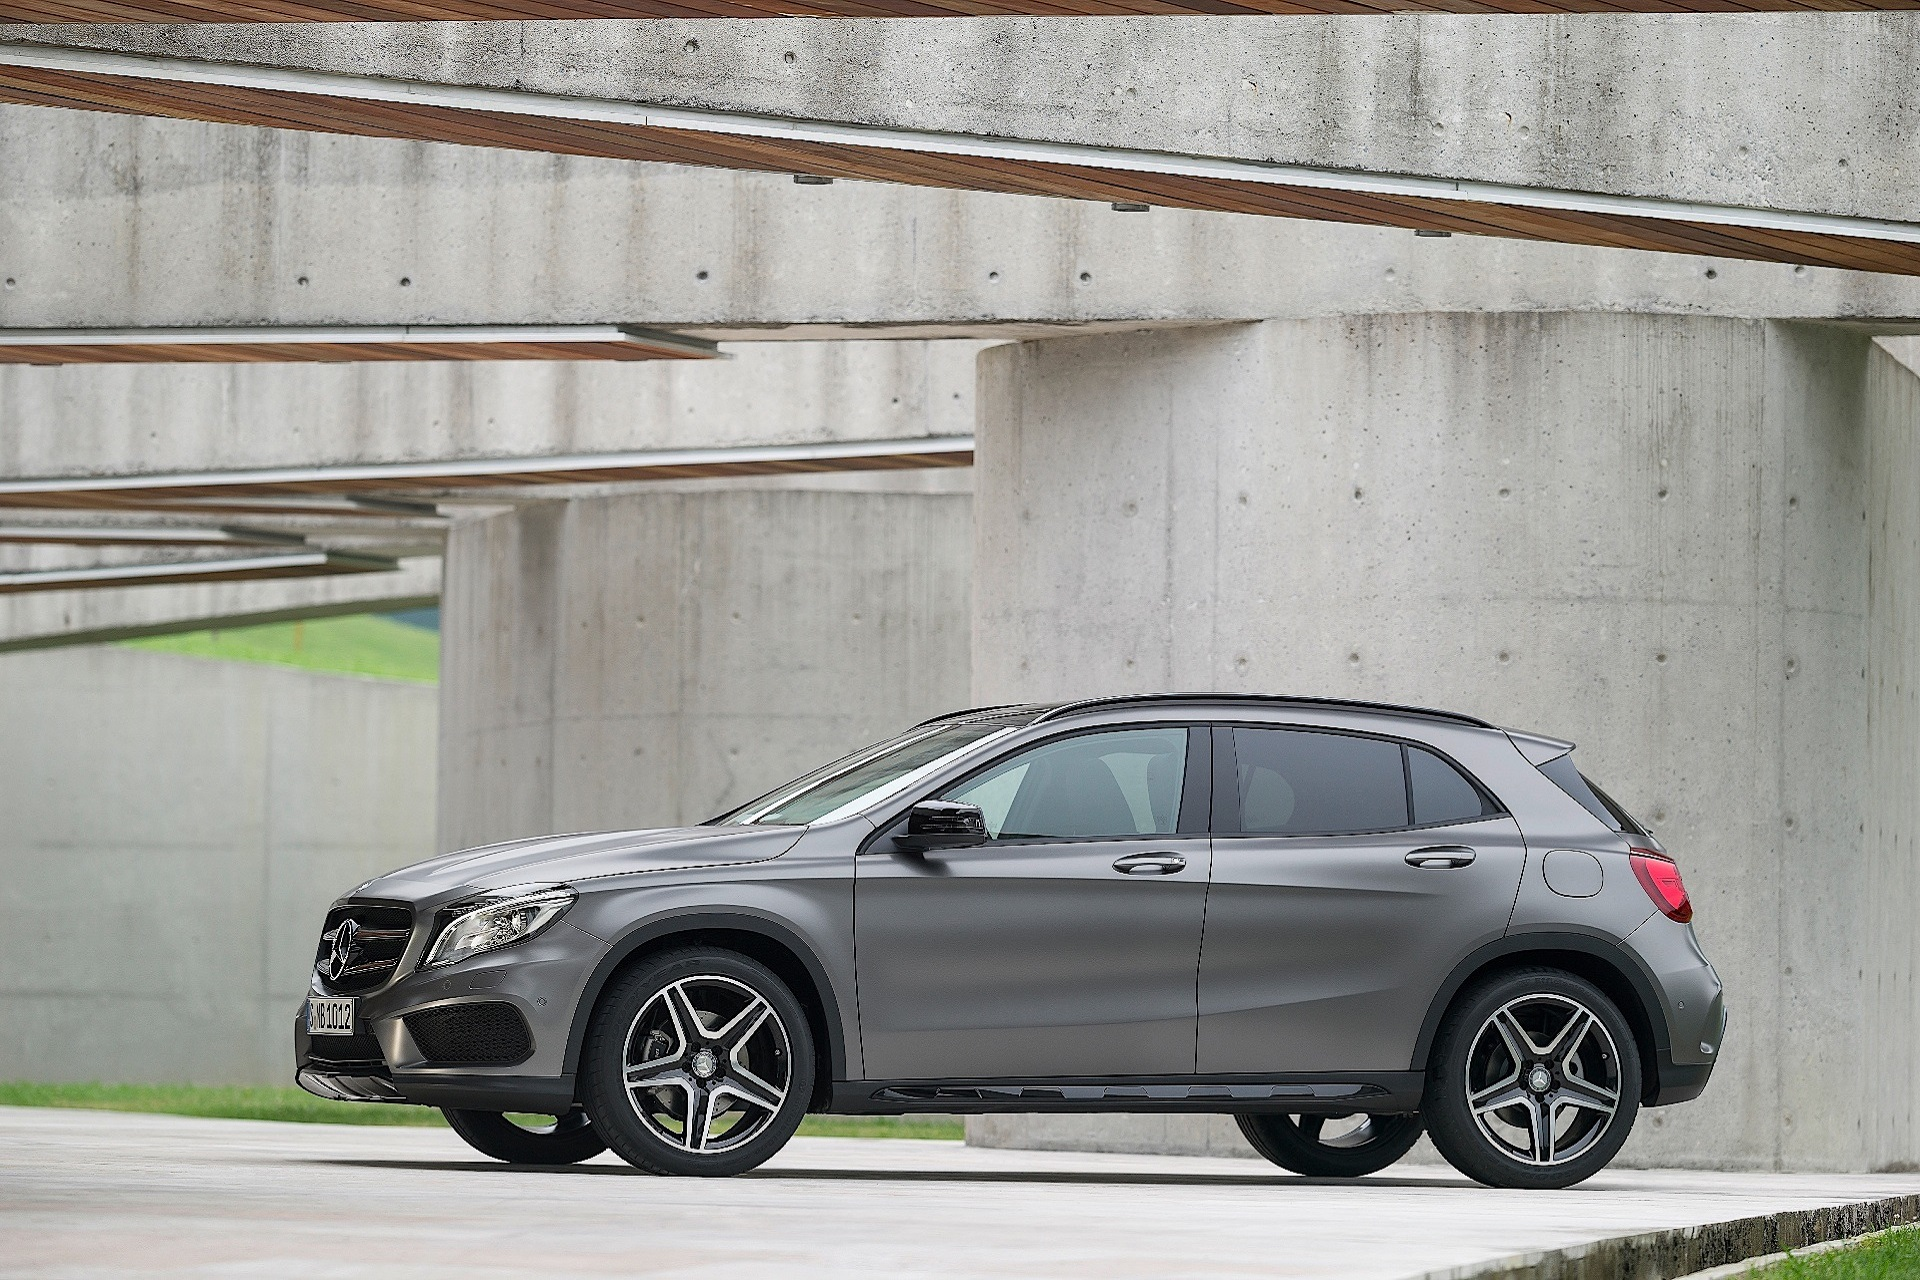 Mercedes Benz GLA250